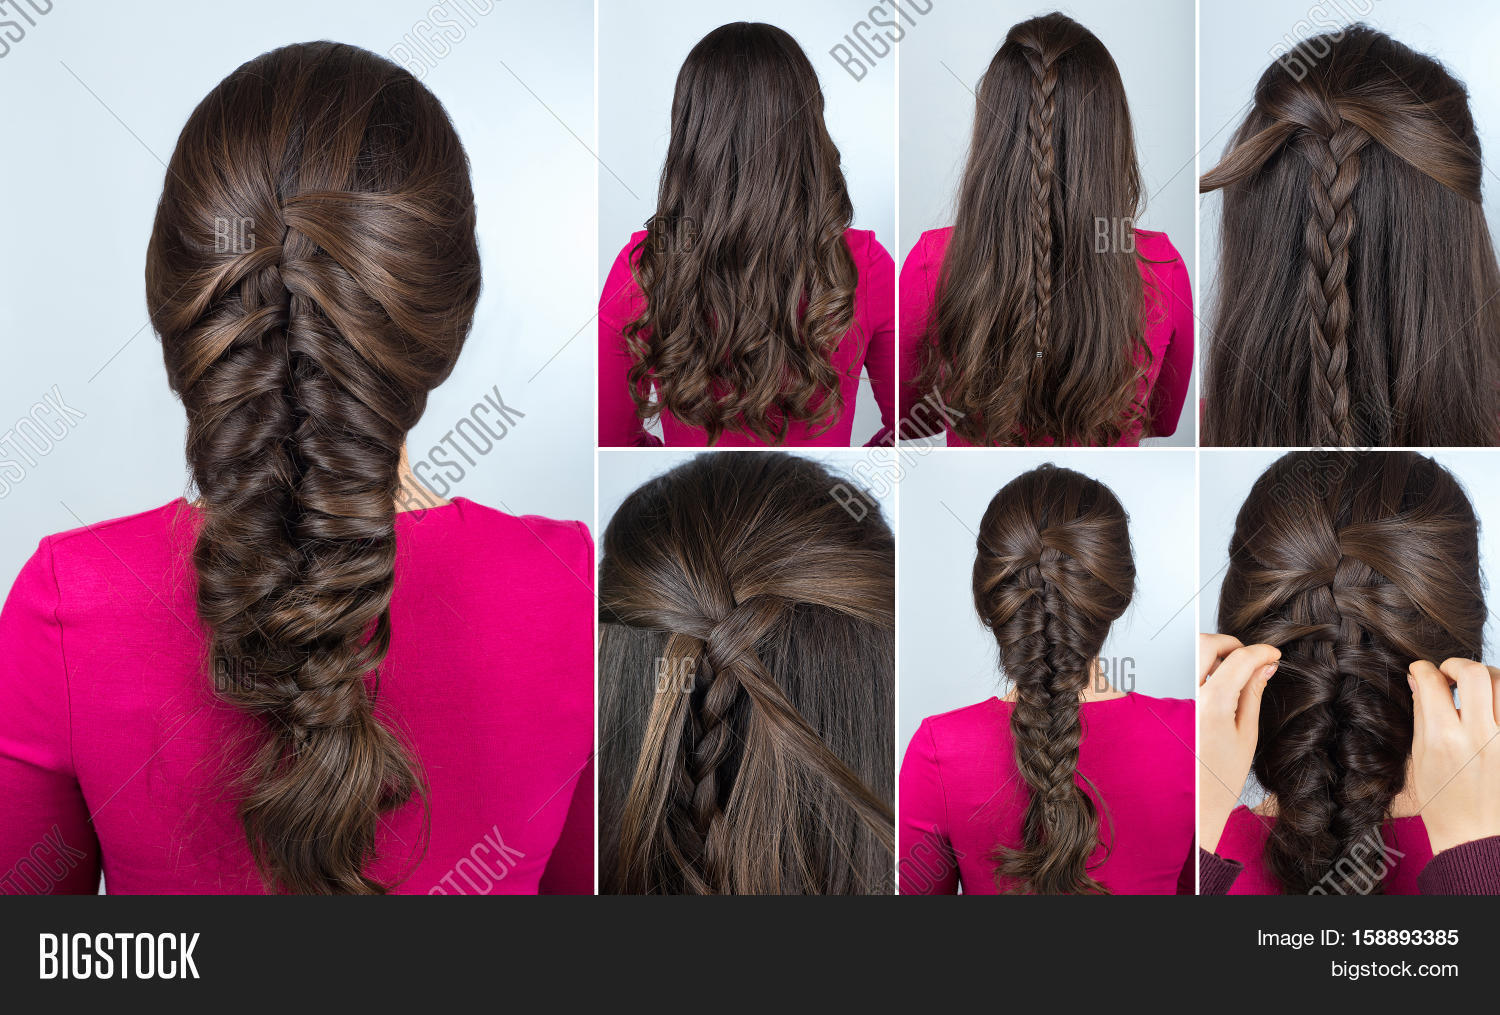 Simple Hairstyle Volume Plait On Image Amp Photo Bigstock